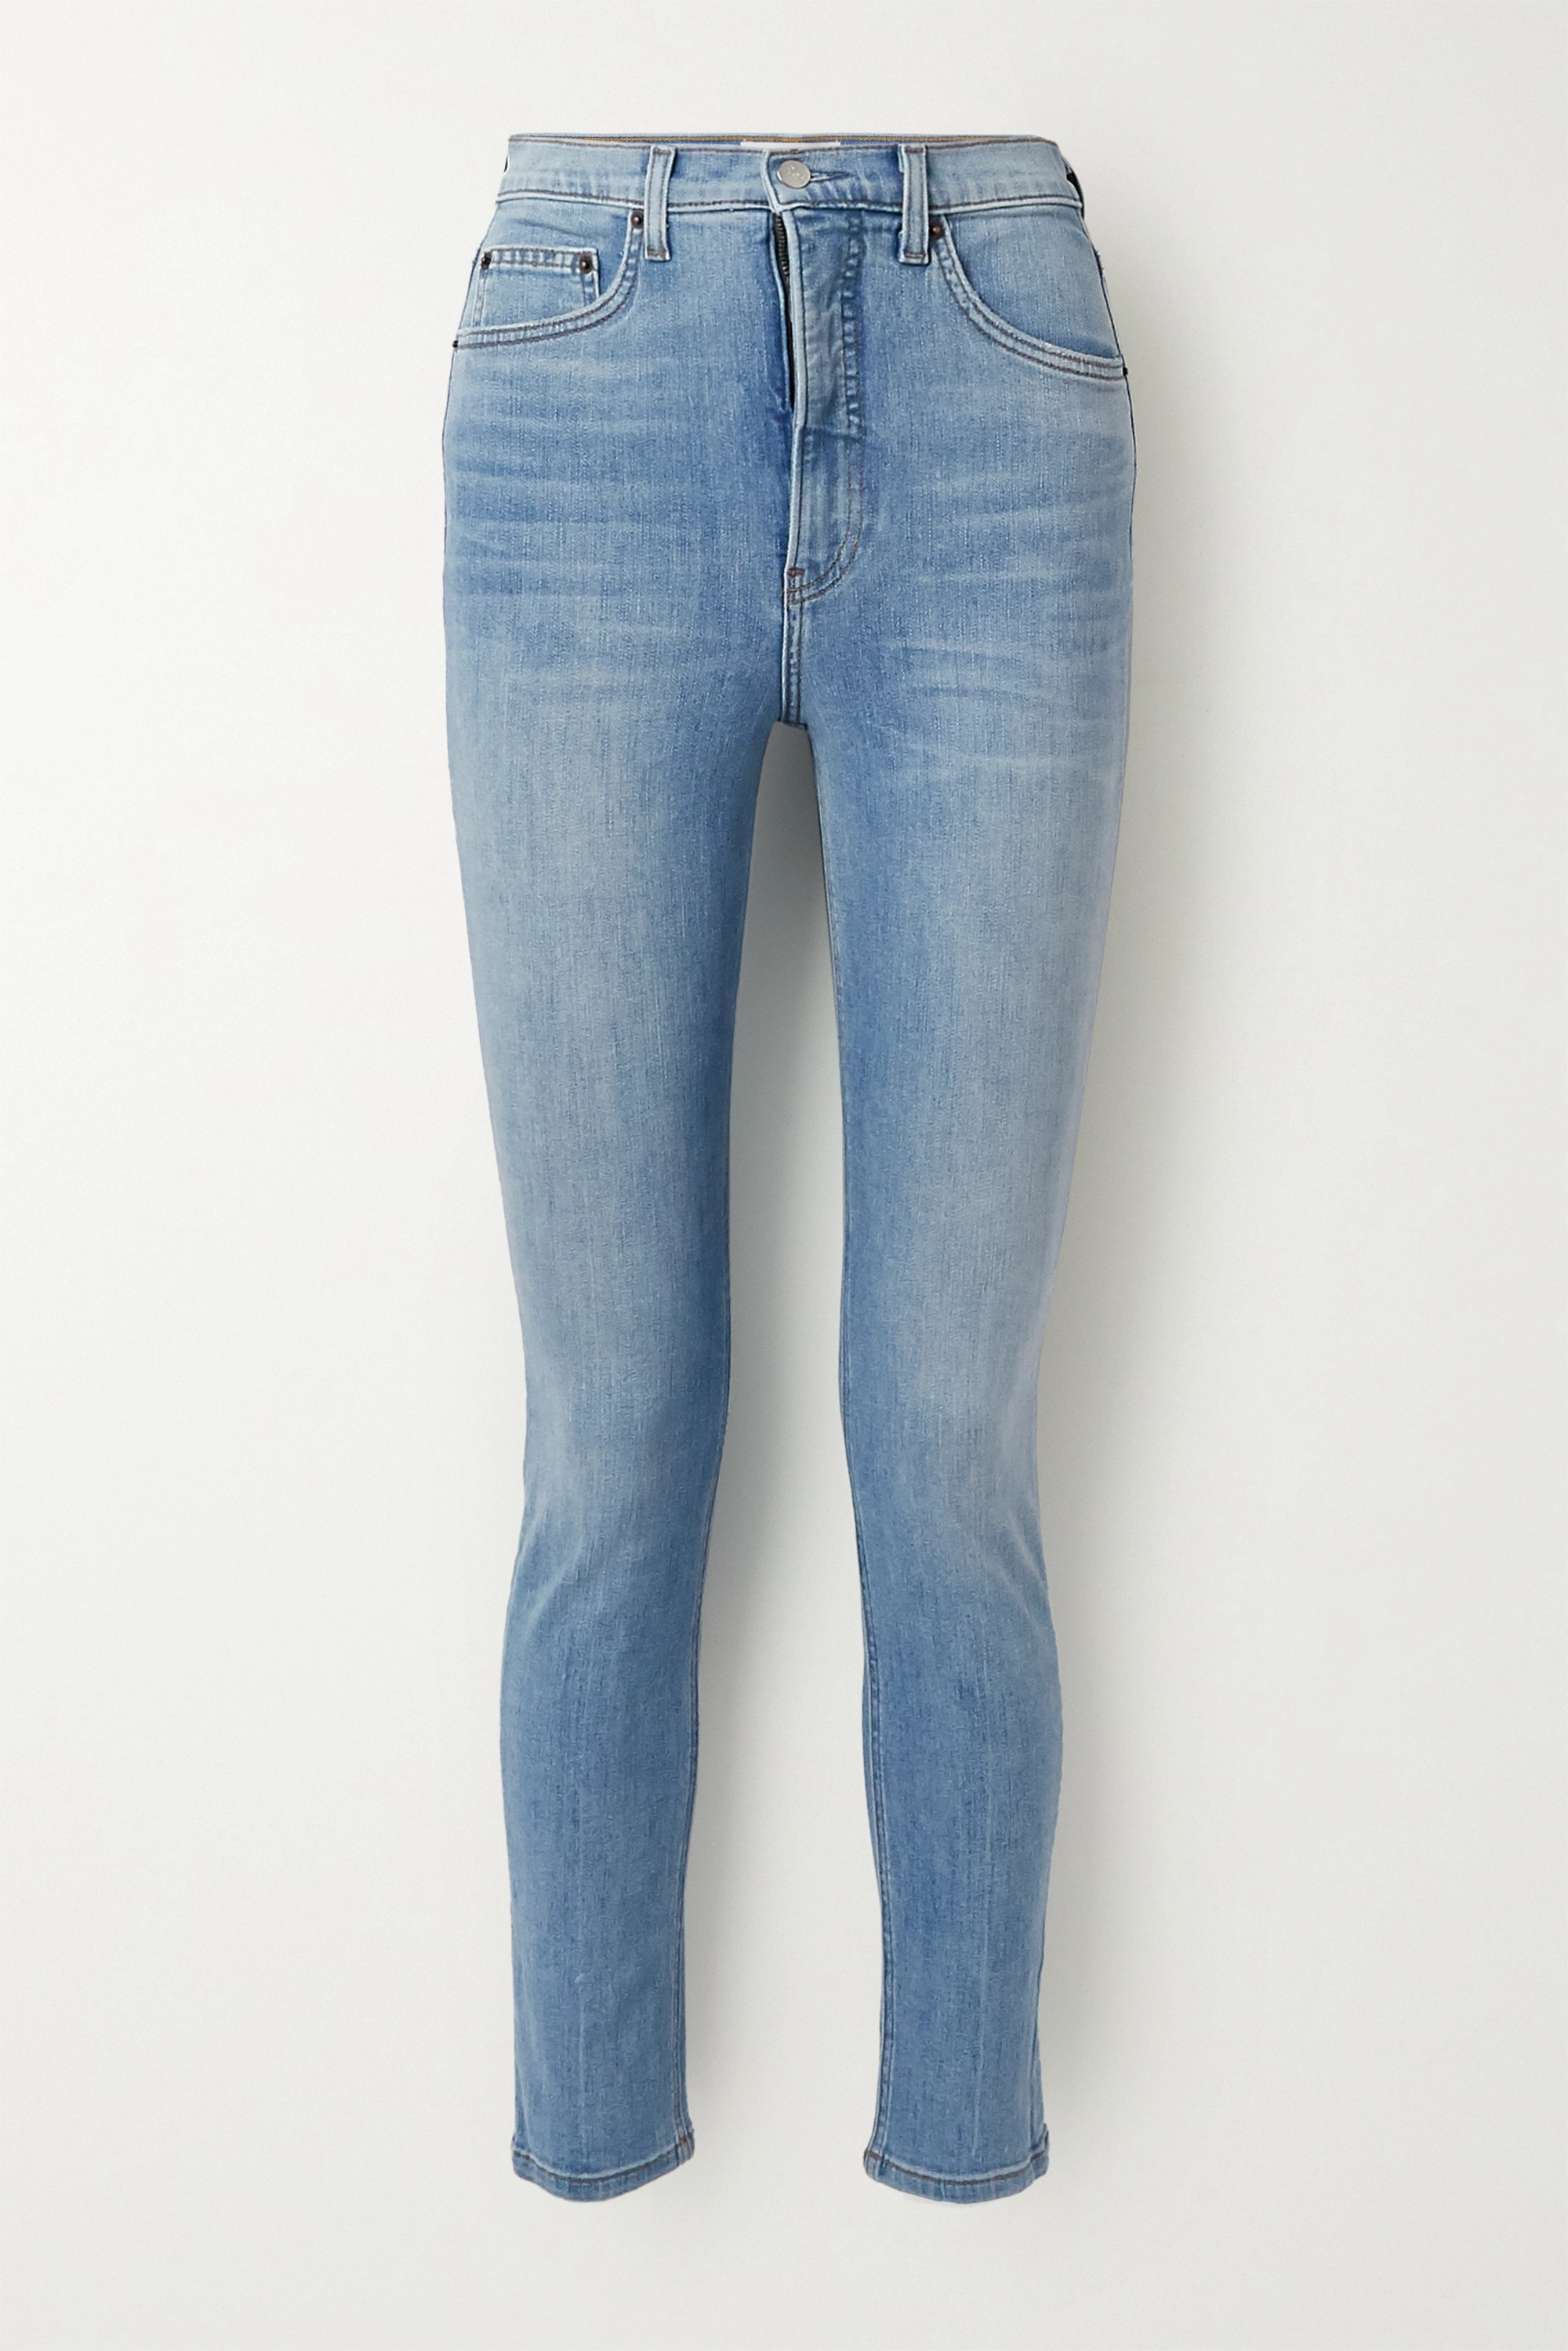 Reformation + NET SUSTAIN high-rise skinny jeans